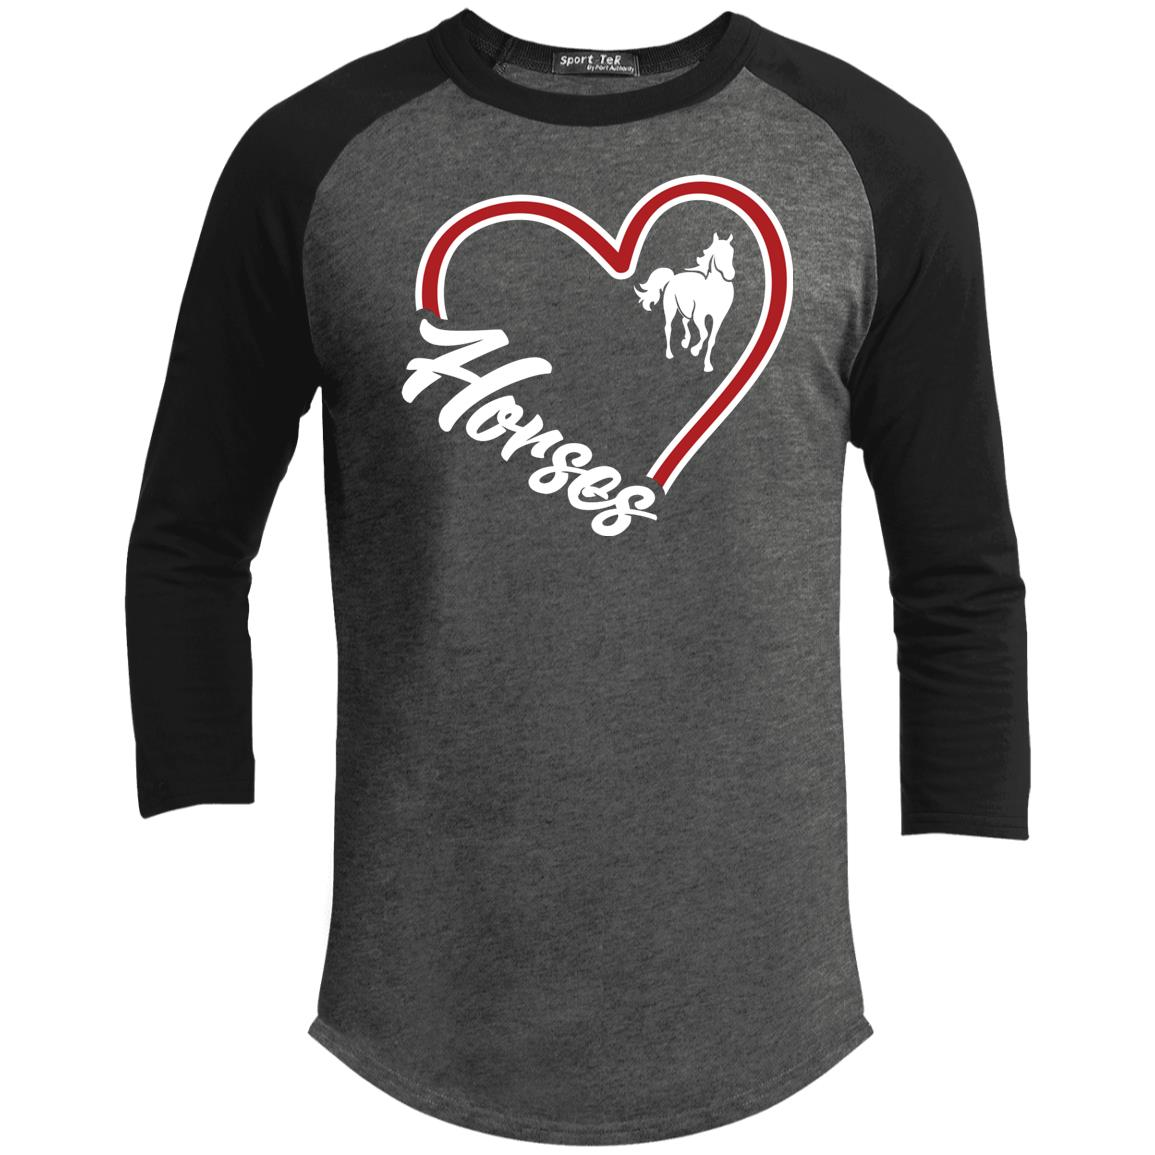 Love Horses Sporty T-Shirt